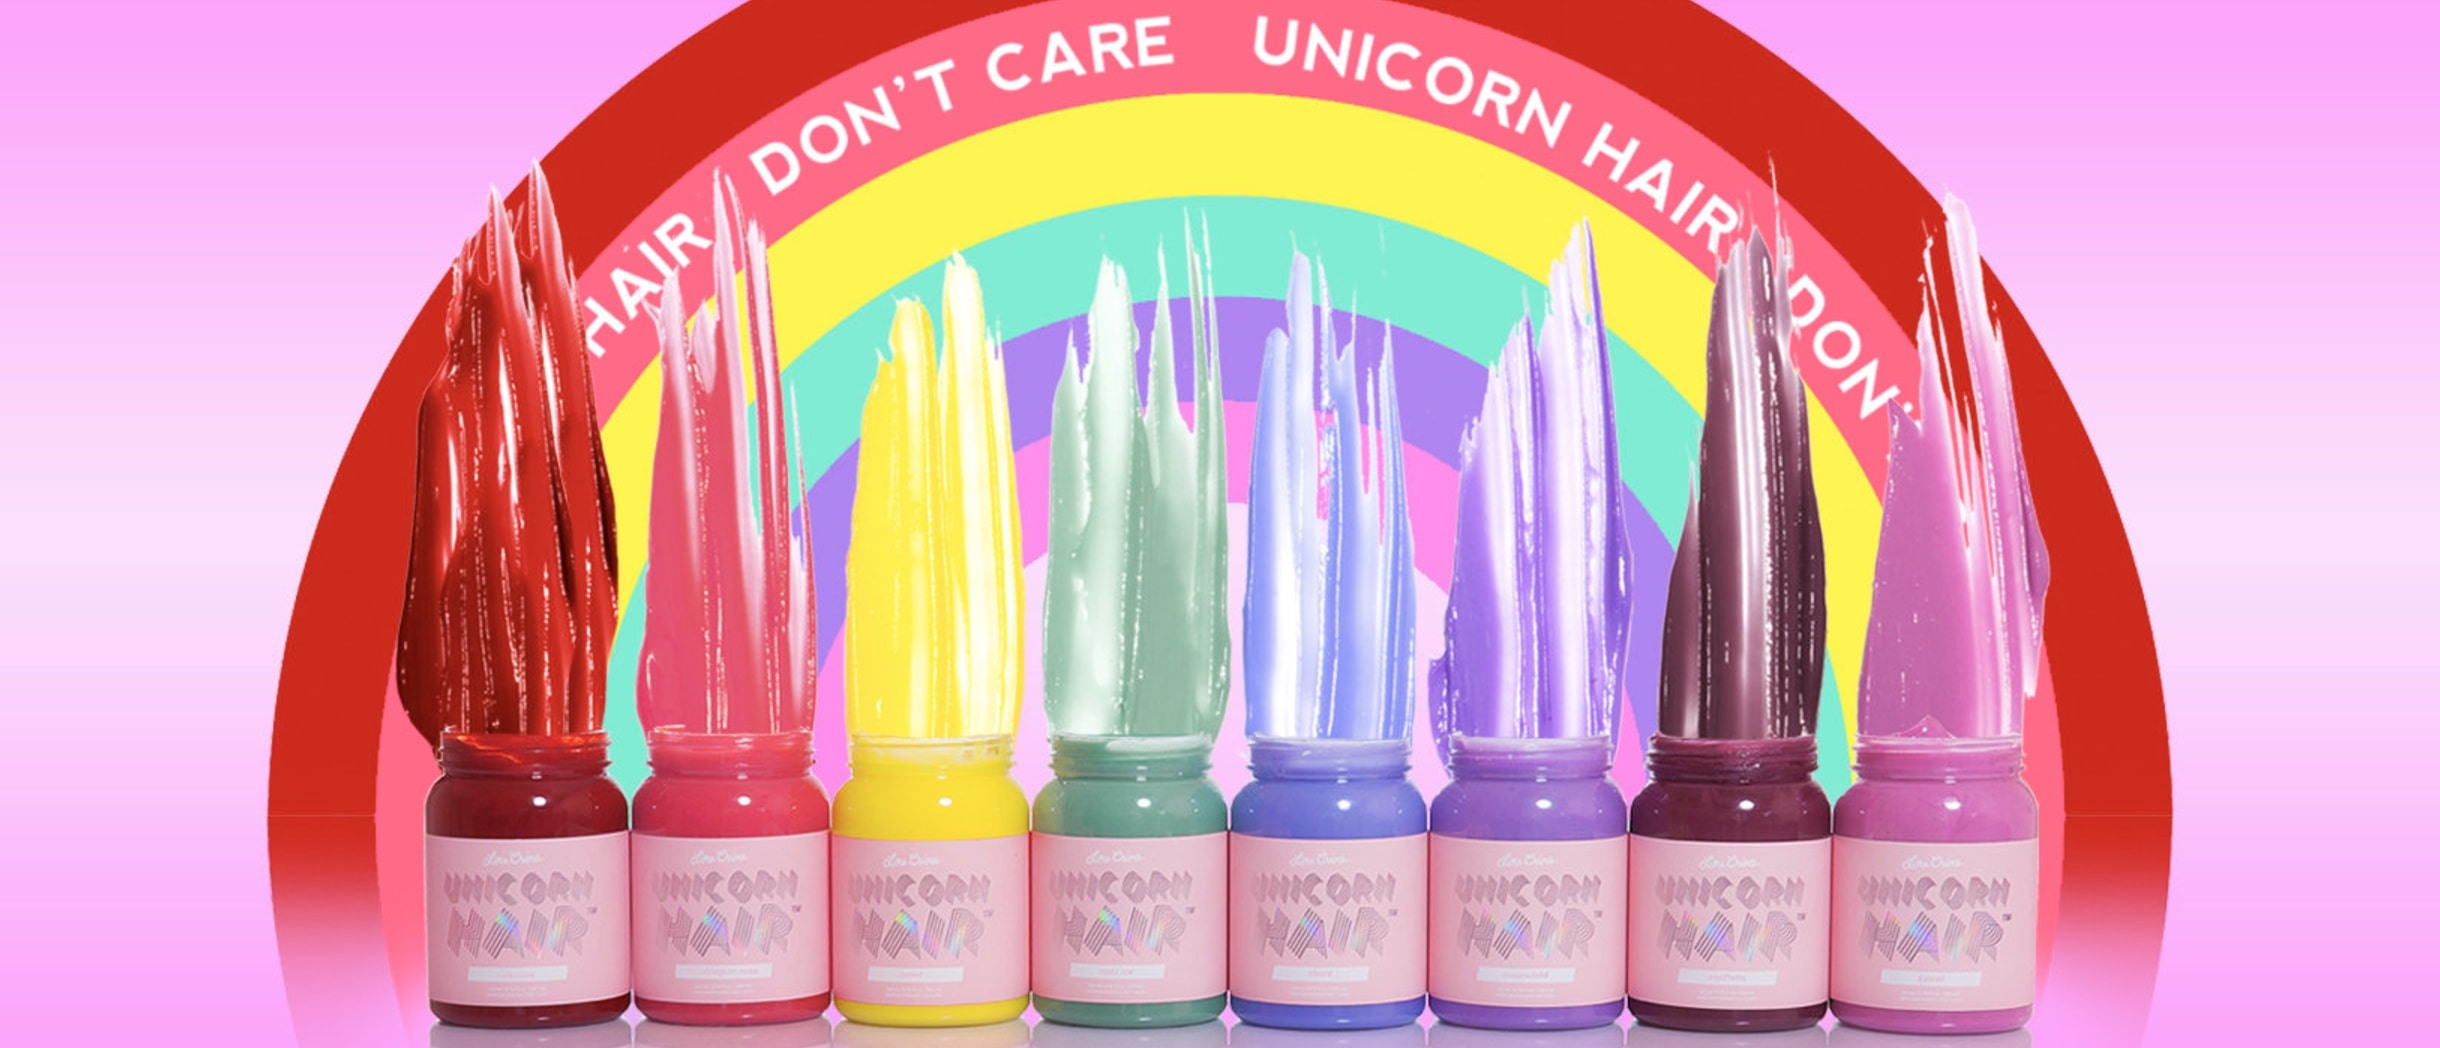 Cult Brand Lime Crime Launches New Vegan And Cruelty-Free \'Unicorn ...